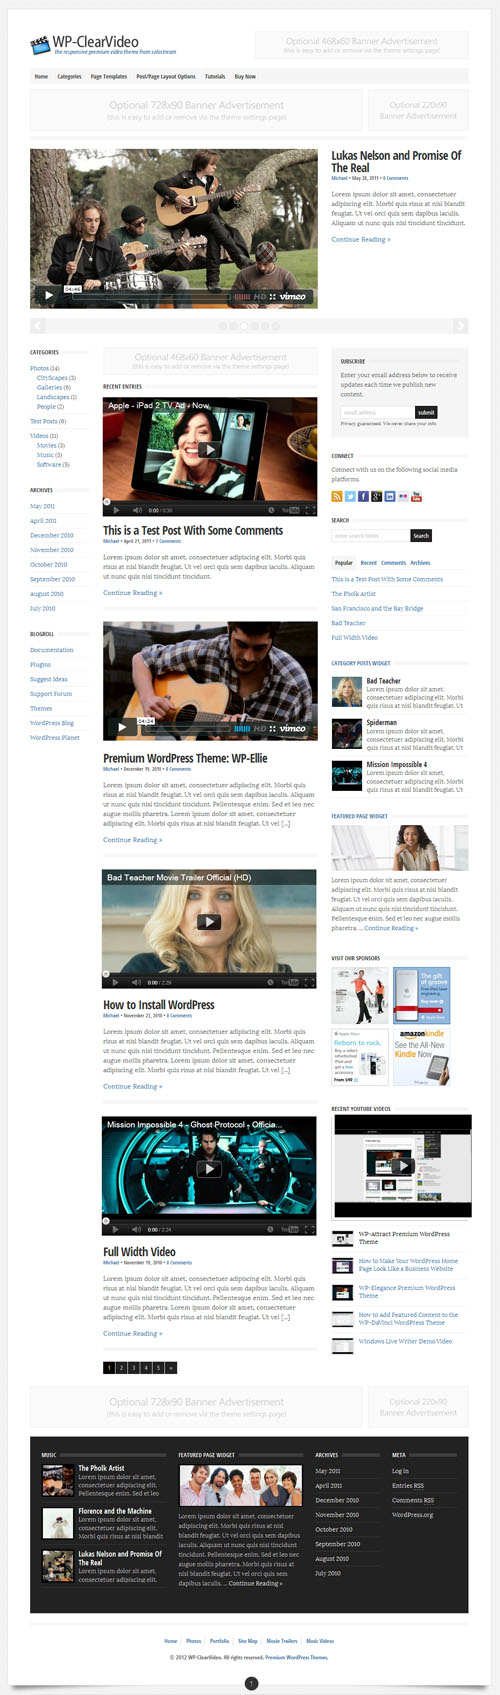 wp-clear-video-wordpress-theme